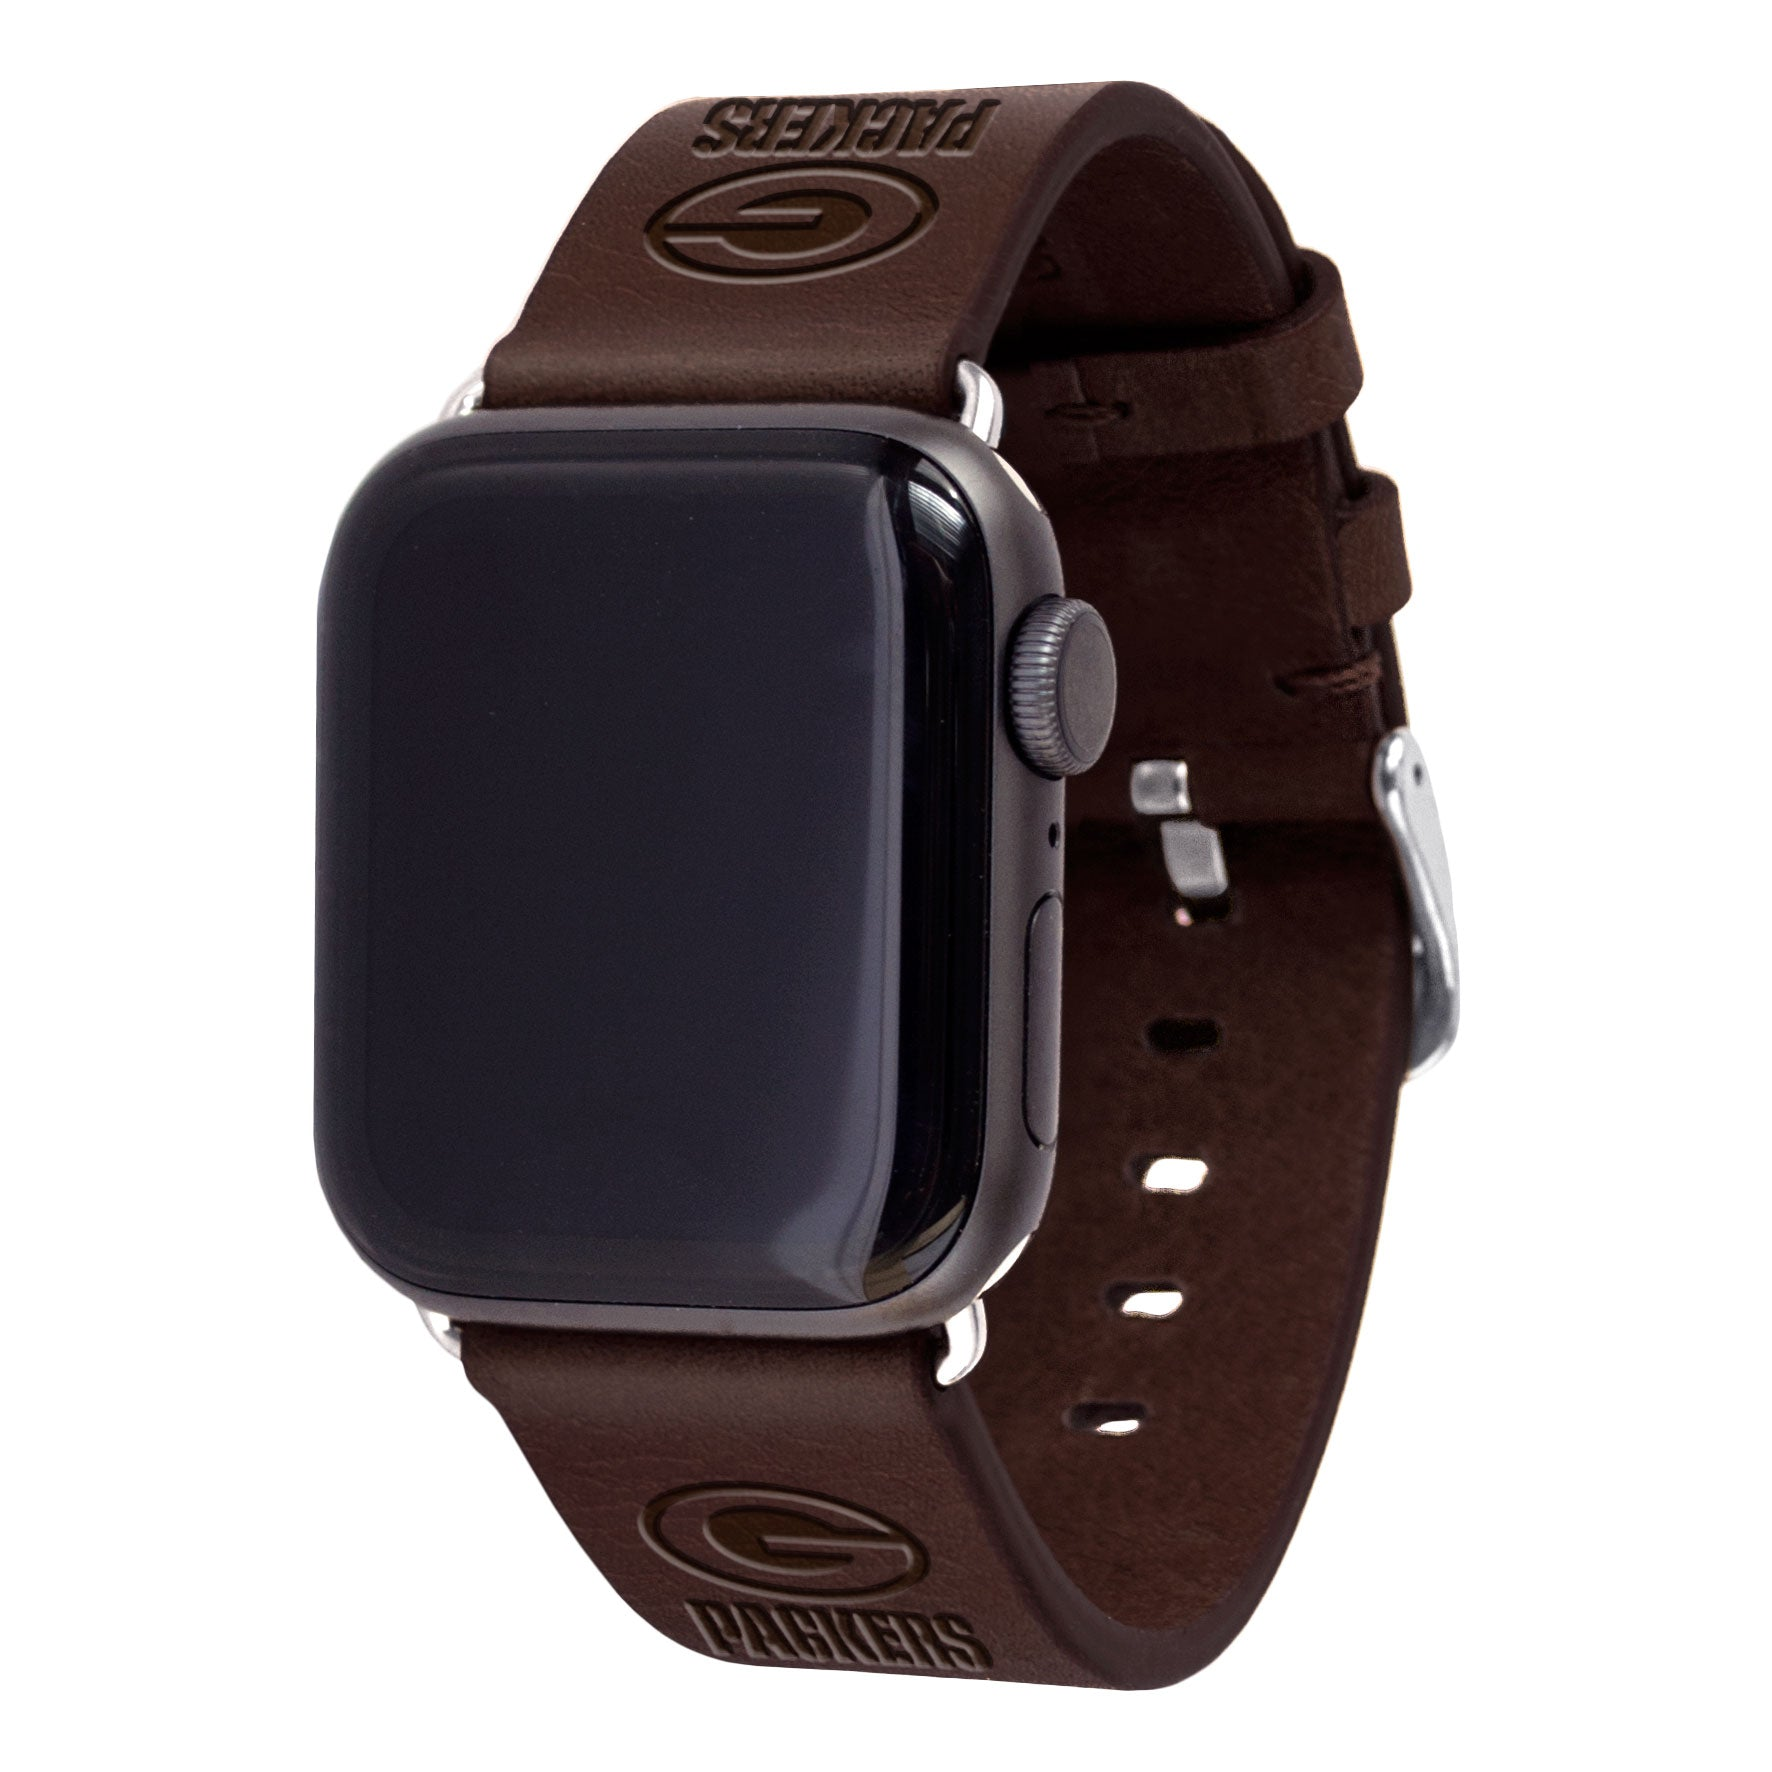 Green Bay Packers Leather Apple Watch Band